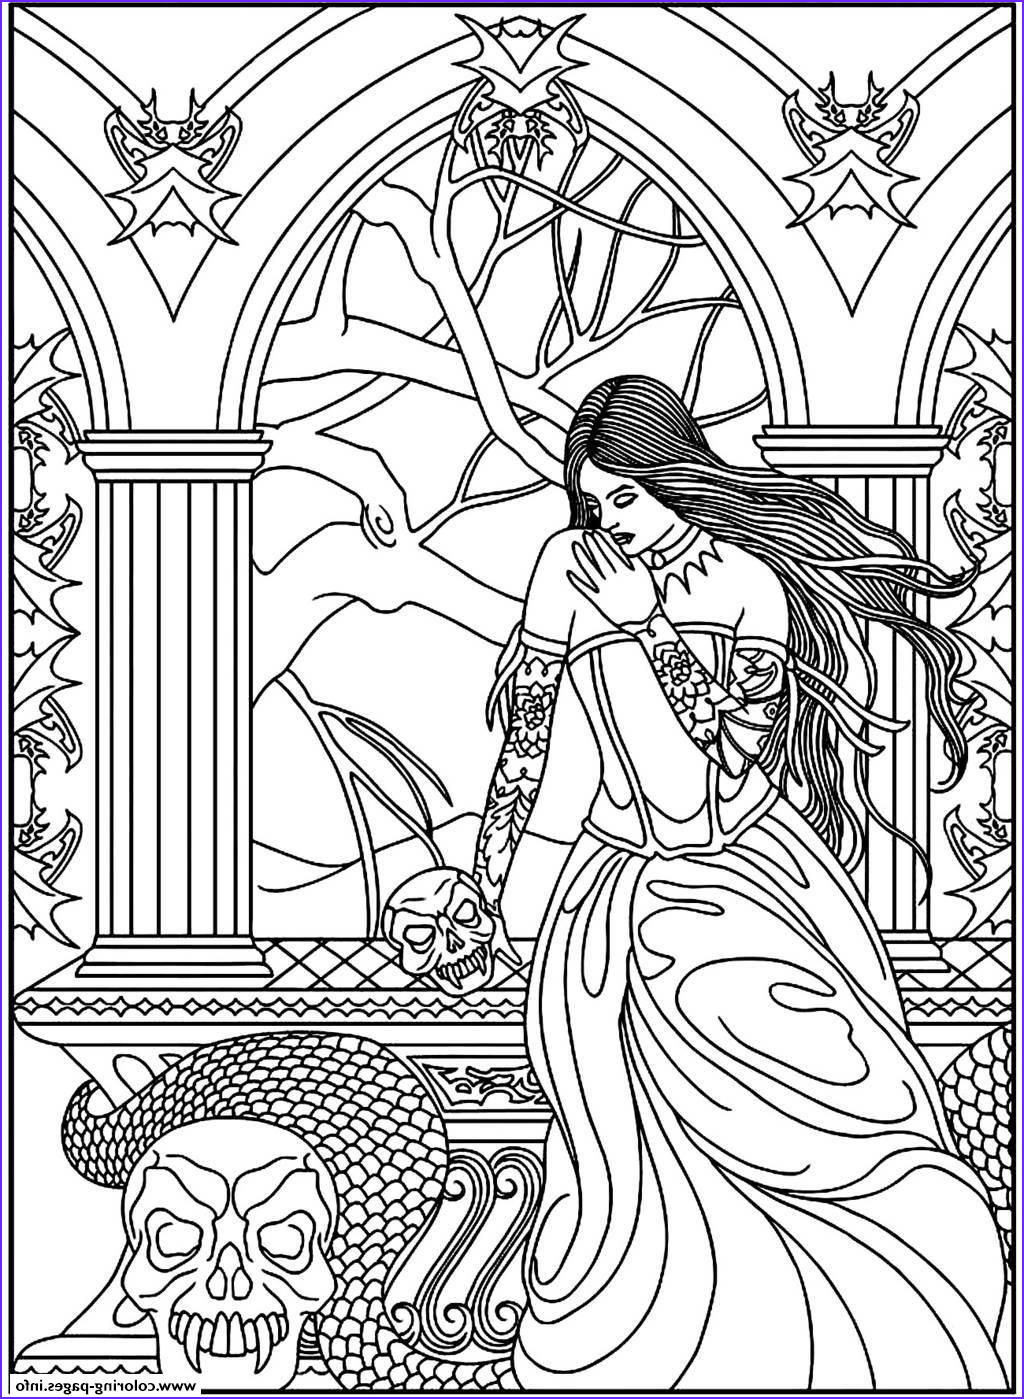 Fantasy Coloring Pages For Adults Best Of Collection Fantasy Adult Coloring Pages Coloring Home